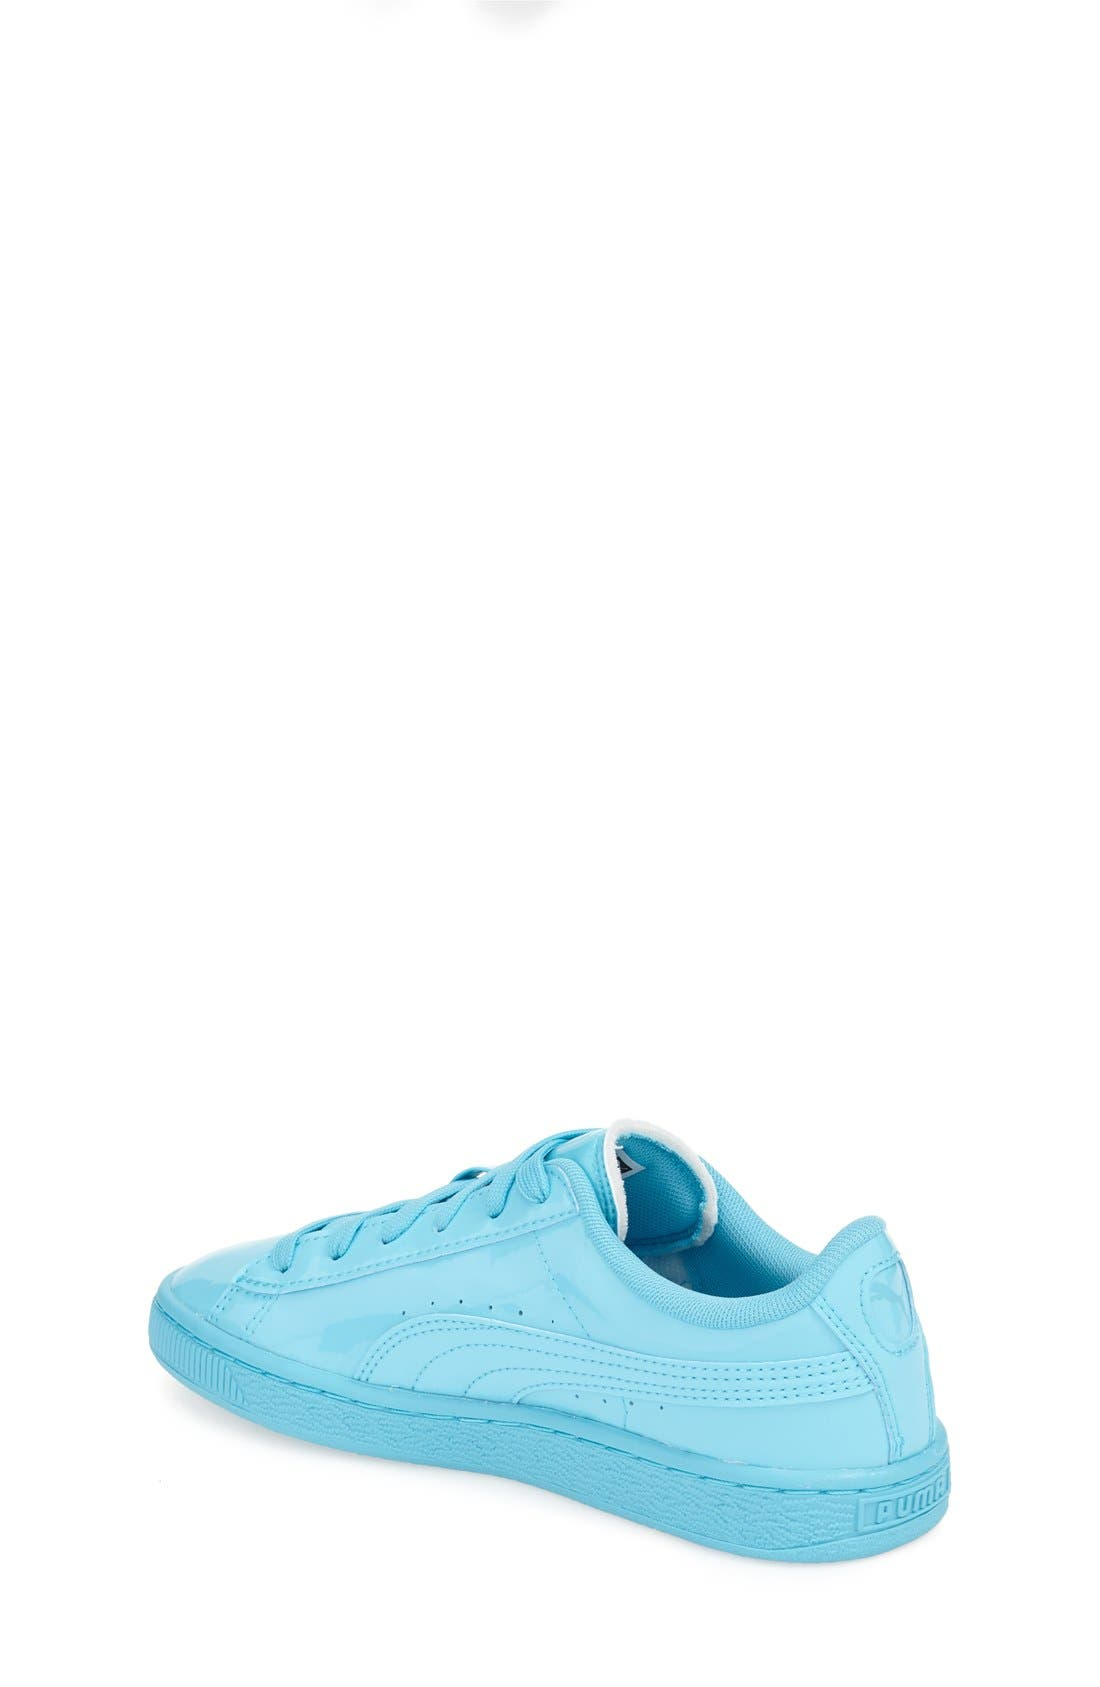 'Basket Classic' Sneaker,                             Alternate thumbnail 2, color,                             Blue Atoll-Blue Atoll